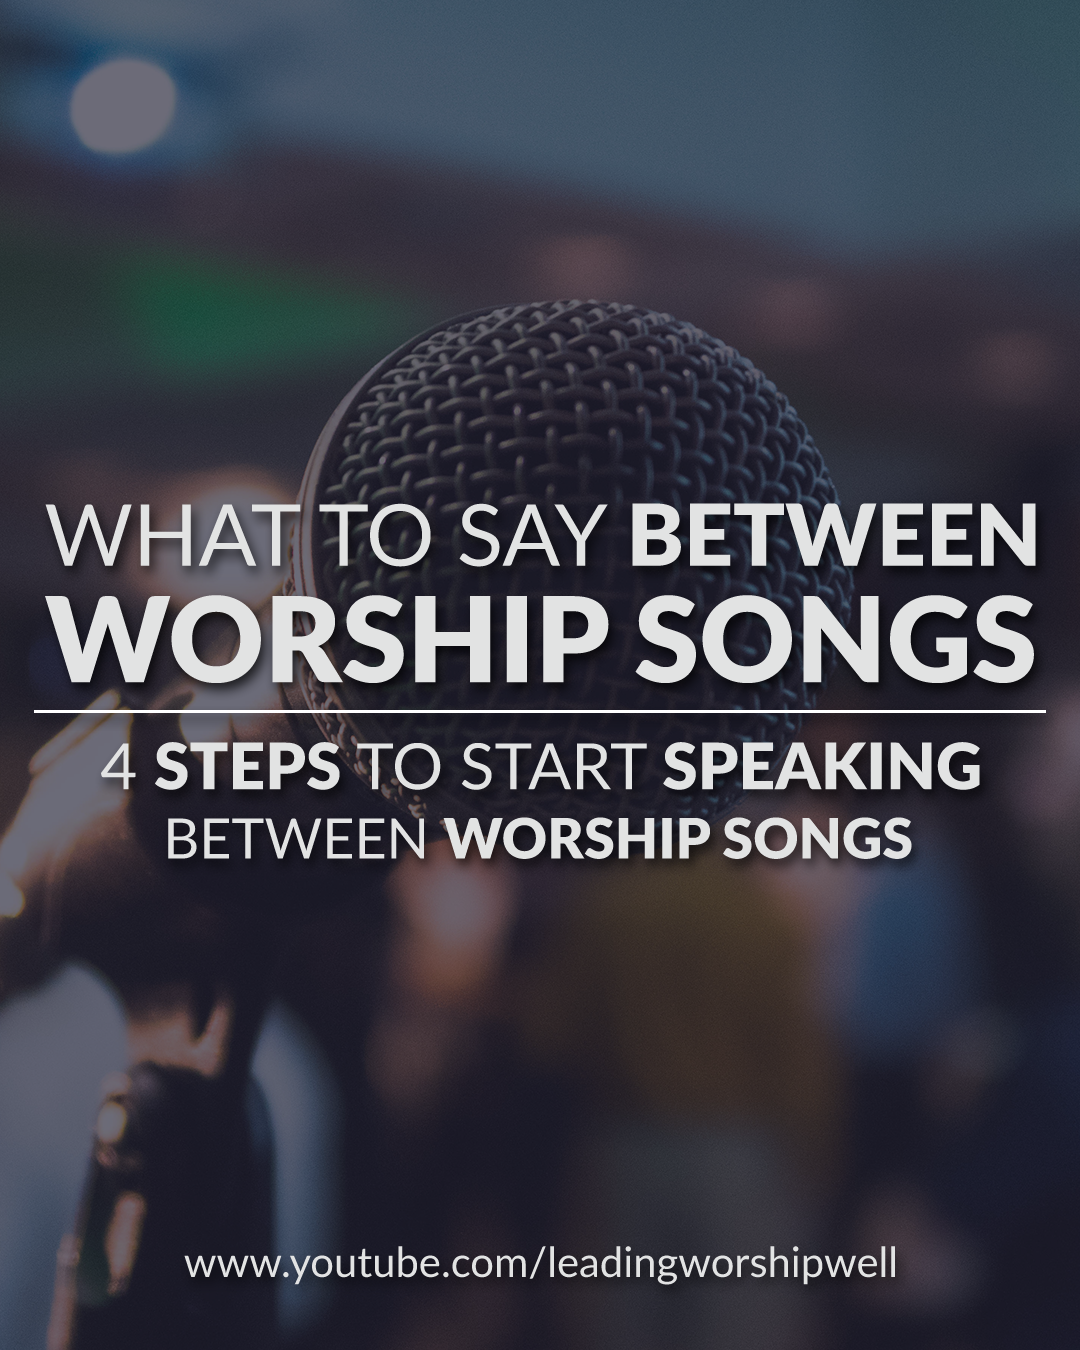 What To Say Between Worship Songs | 4 Steps To Start Speaking Between Worship Songs (Video)